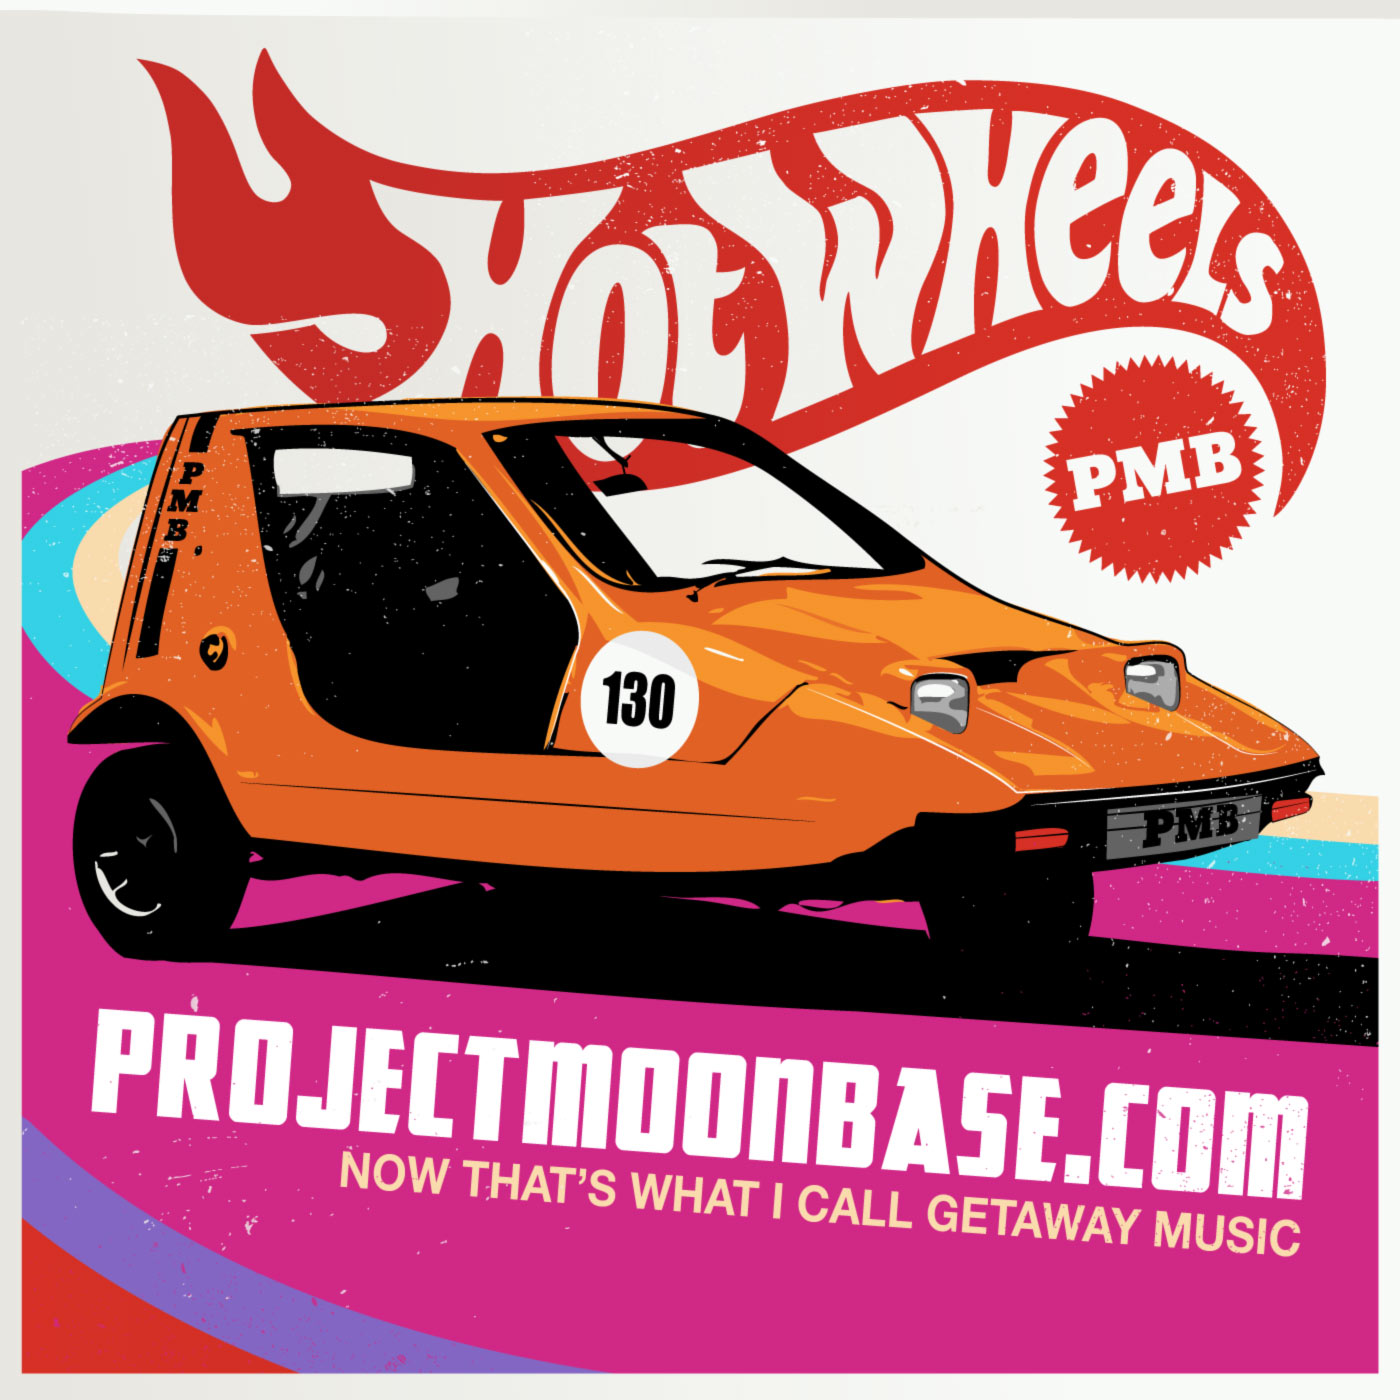 PMB130 Hot Wheels